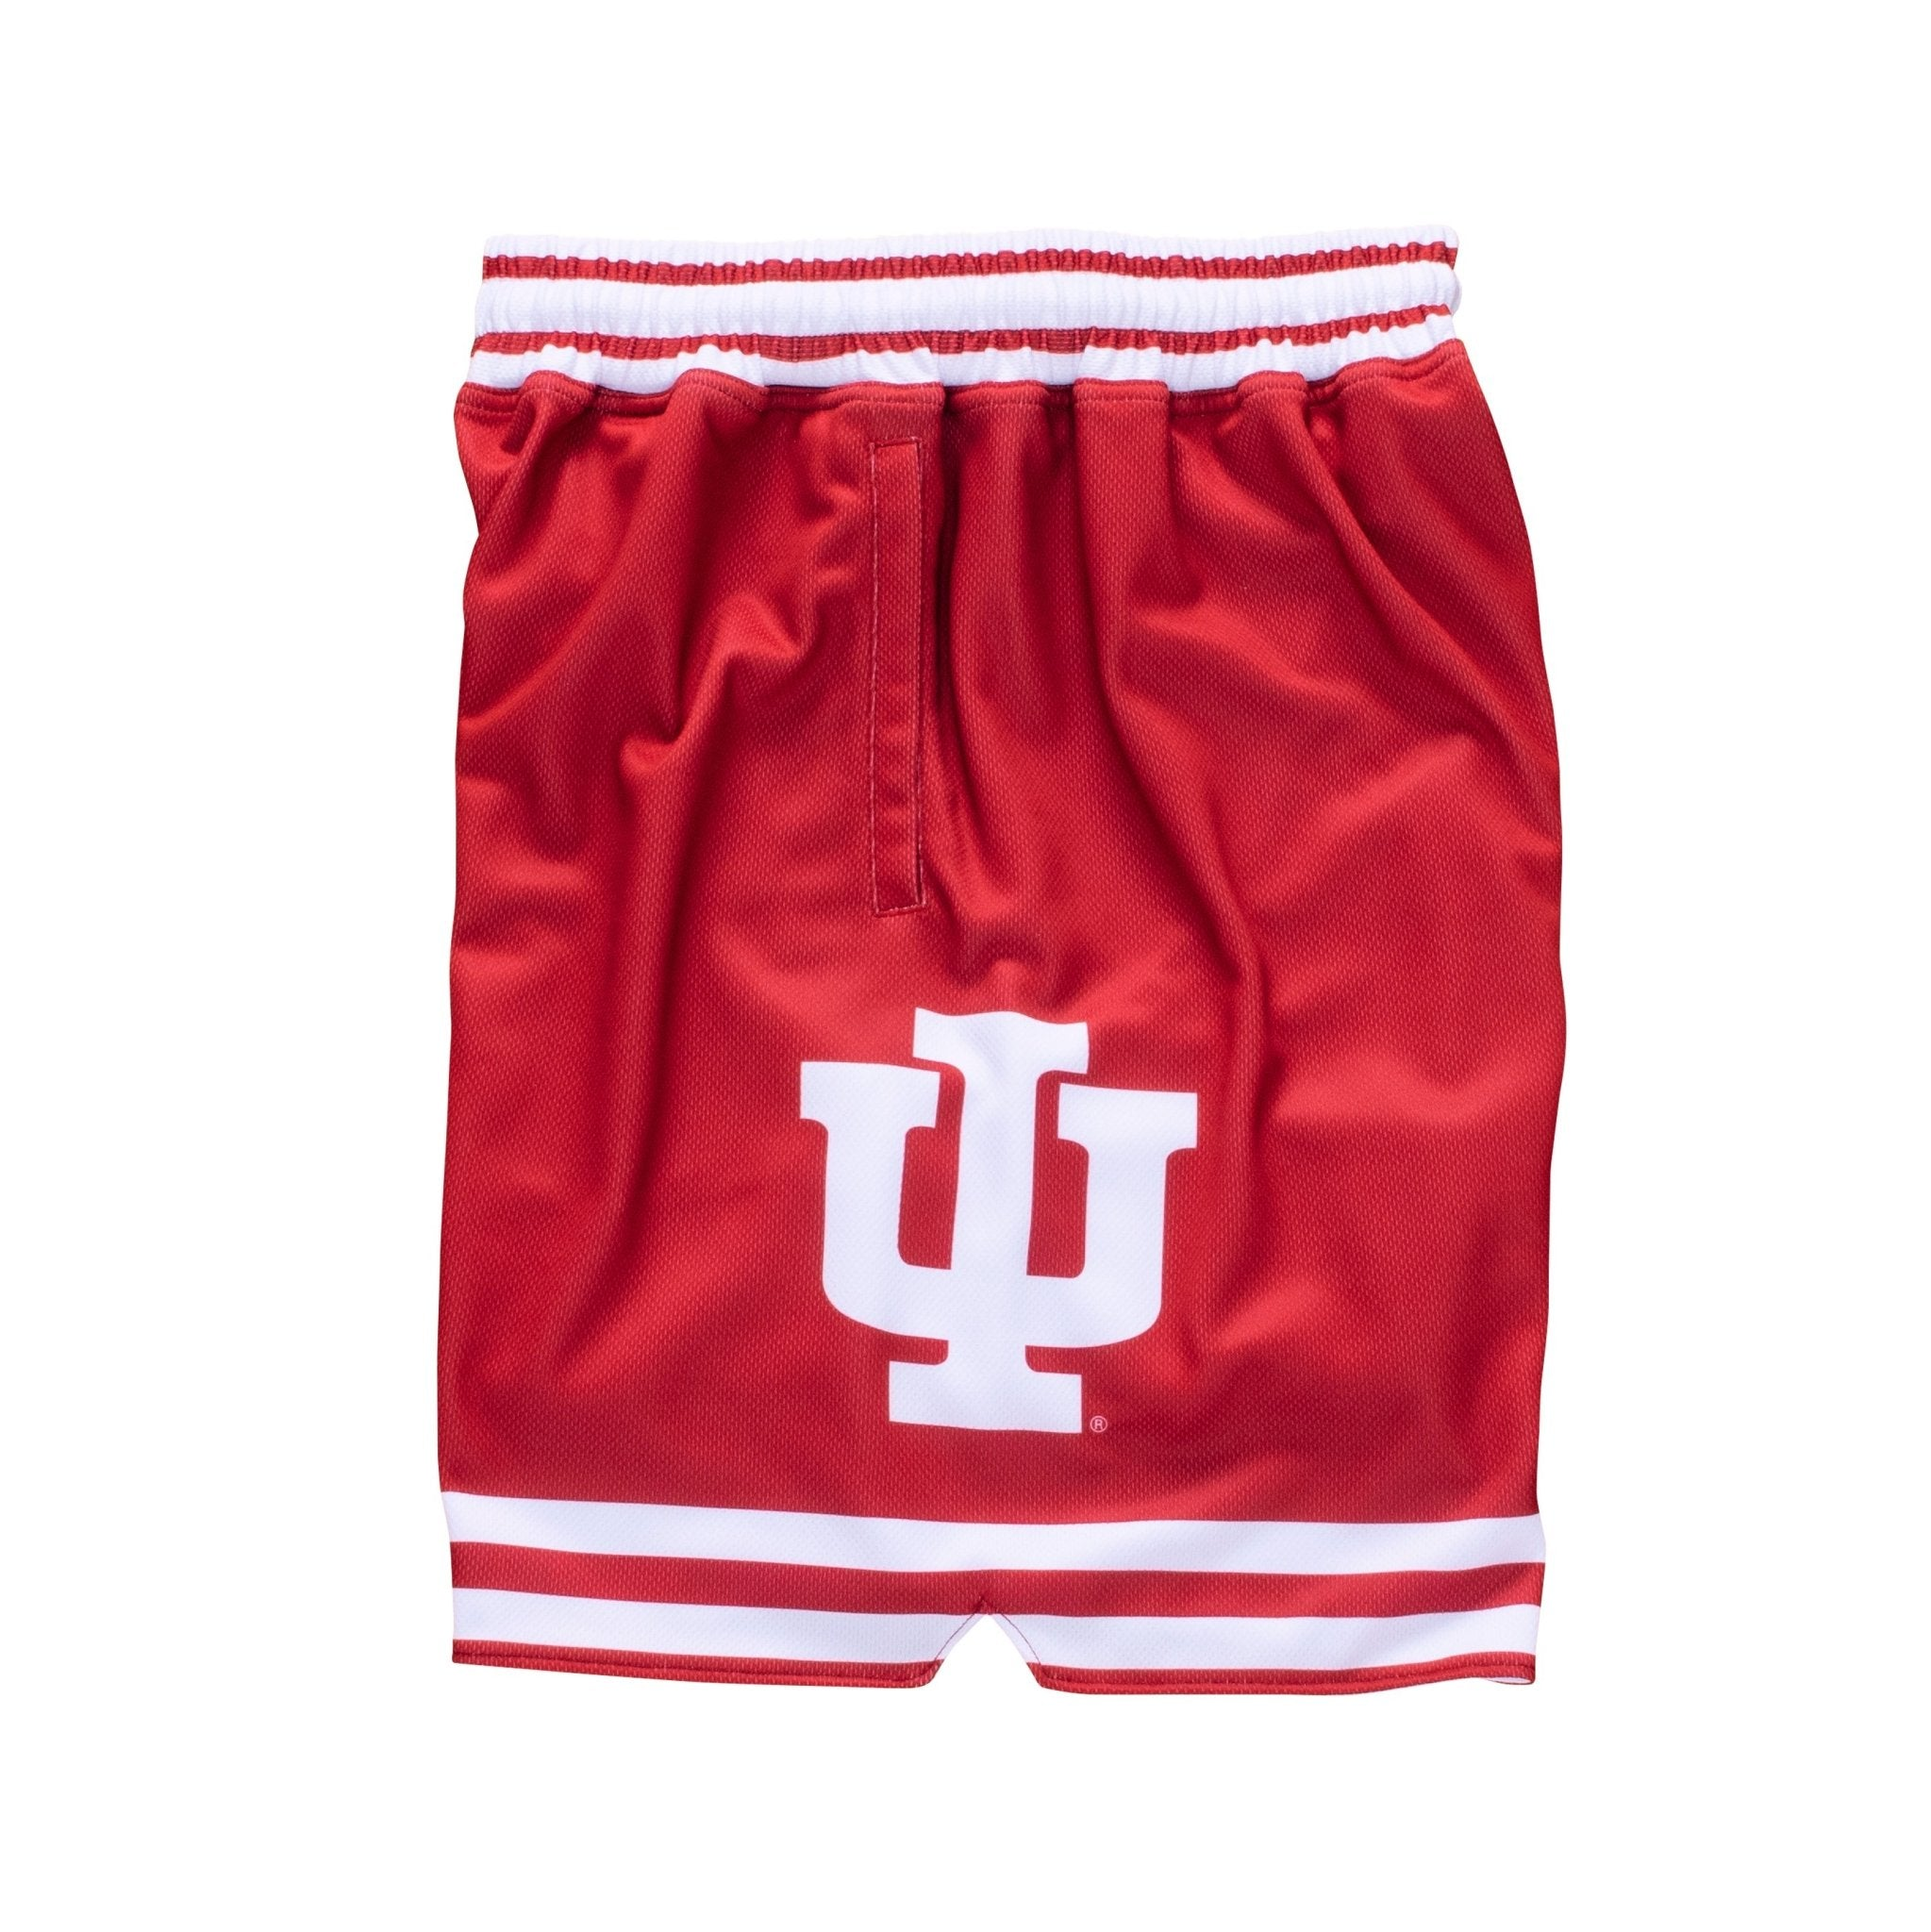 Indiana Hoosiers 1980-1981 Retro Shorts - SLAM